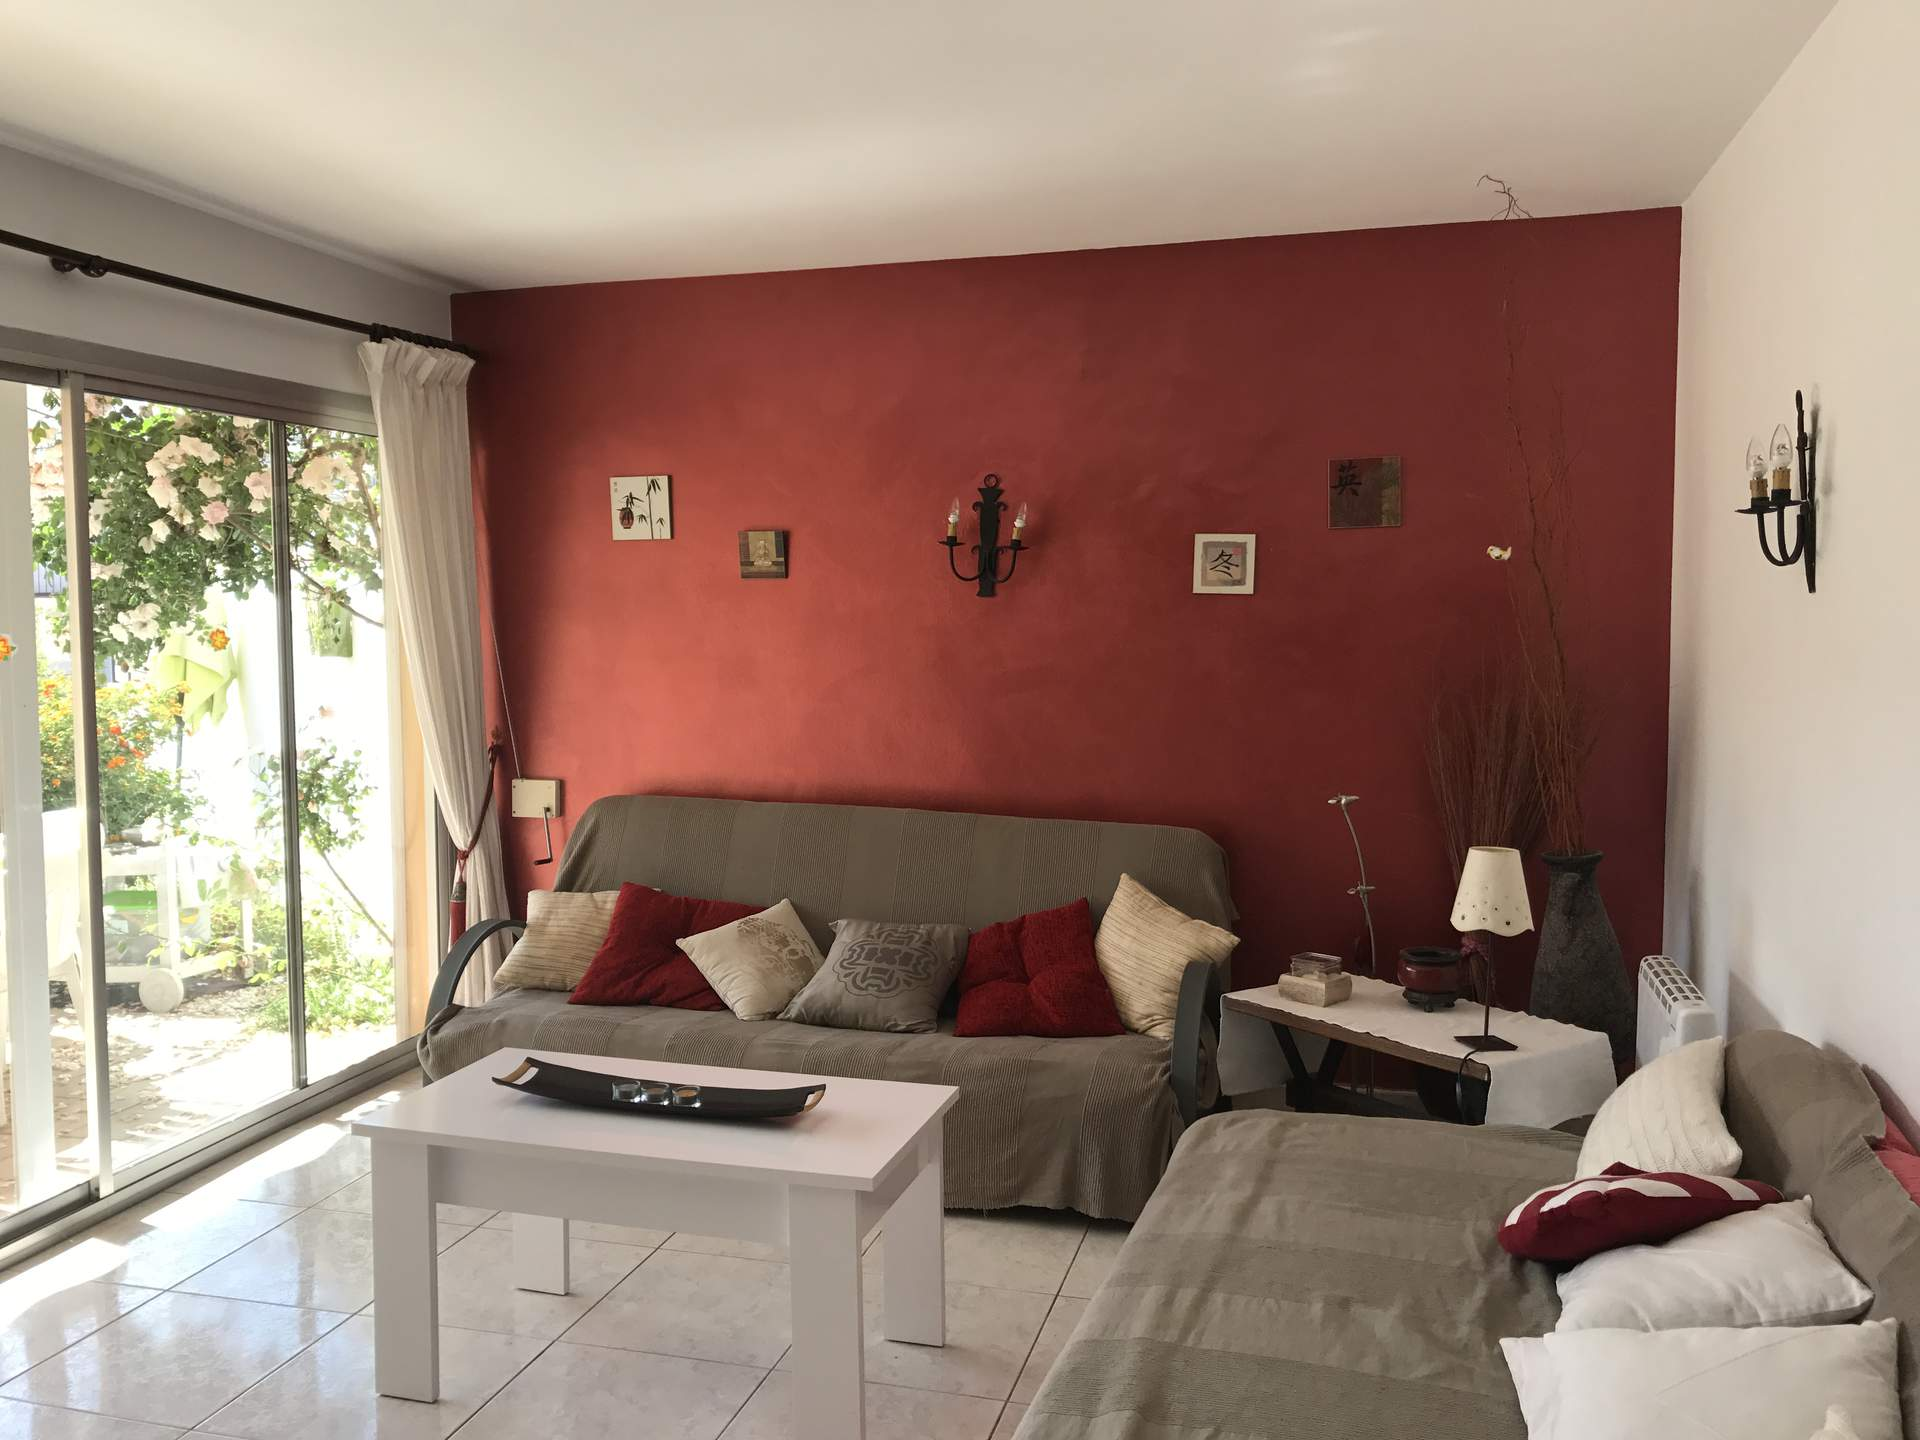 Location vacances Appartement Palamos